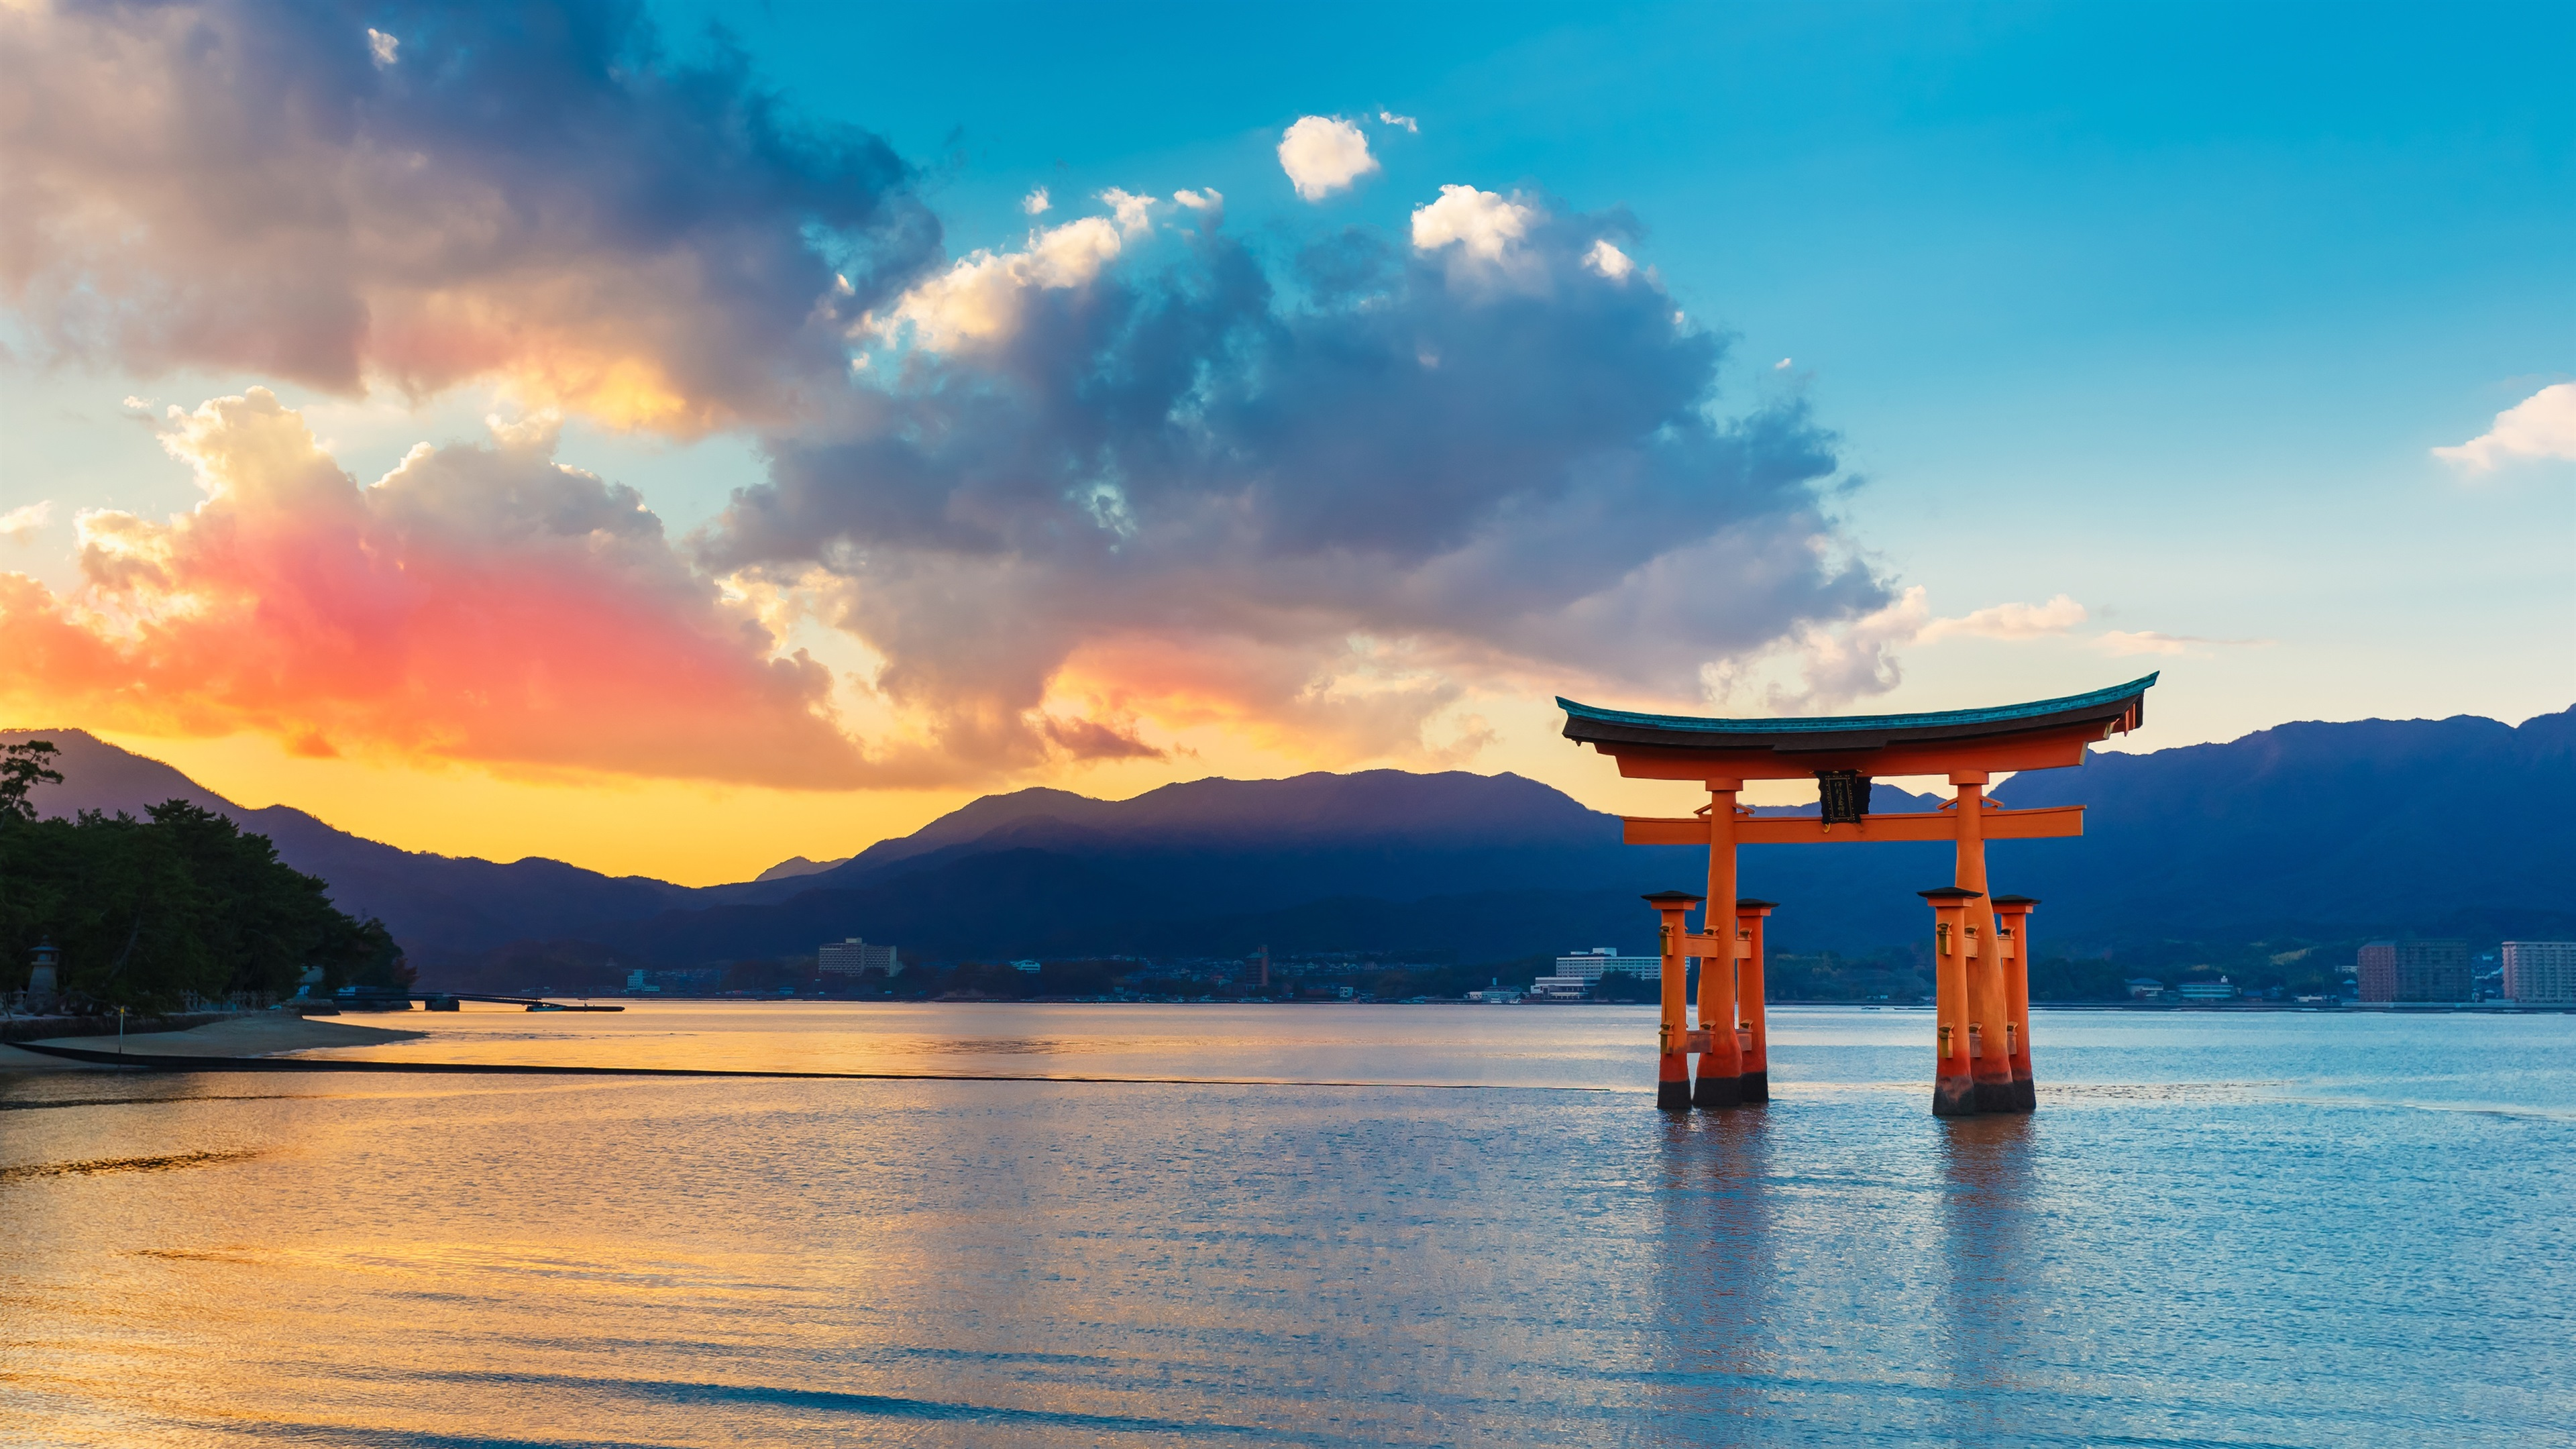 Wallpapers Torii Gate, sea, sunset, Japan 3840x2160 UHD 4K Picture, Image